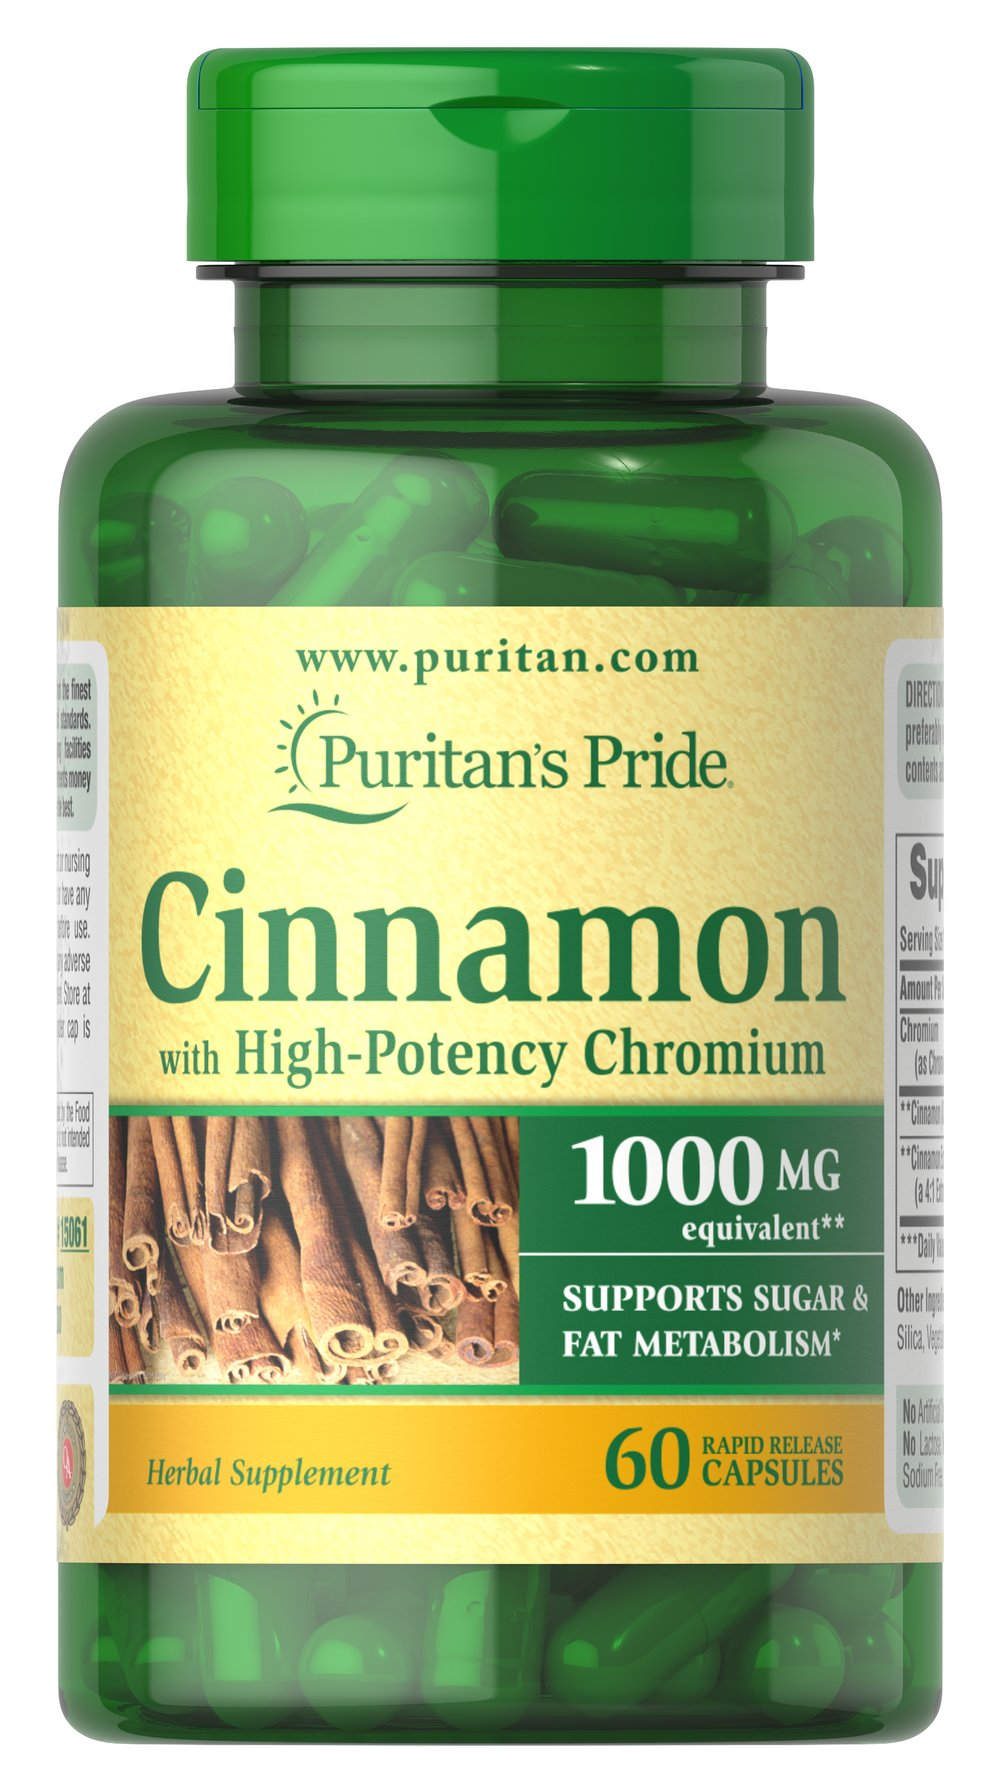 Cinnamon Complex with High Potency Chromium <ul><li>SUPPORTS SUGAR & FAT METABOLISM**</li></ul><p>Cinnamon is an ancient herb that has recently gained widespread popularity for its ability to support health and wellness.** This synergistic formula includes high-potency Chromium Picolinate. Specially formulated to deliver 1000 mg Cinnamon and 200 mcg Chromium Picolinate — an unbeatable combination.</p> 60 Capsules 1000 mg $13.99